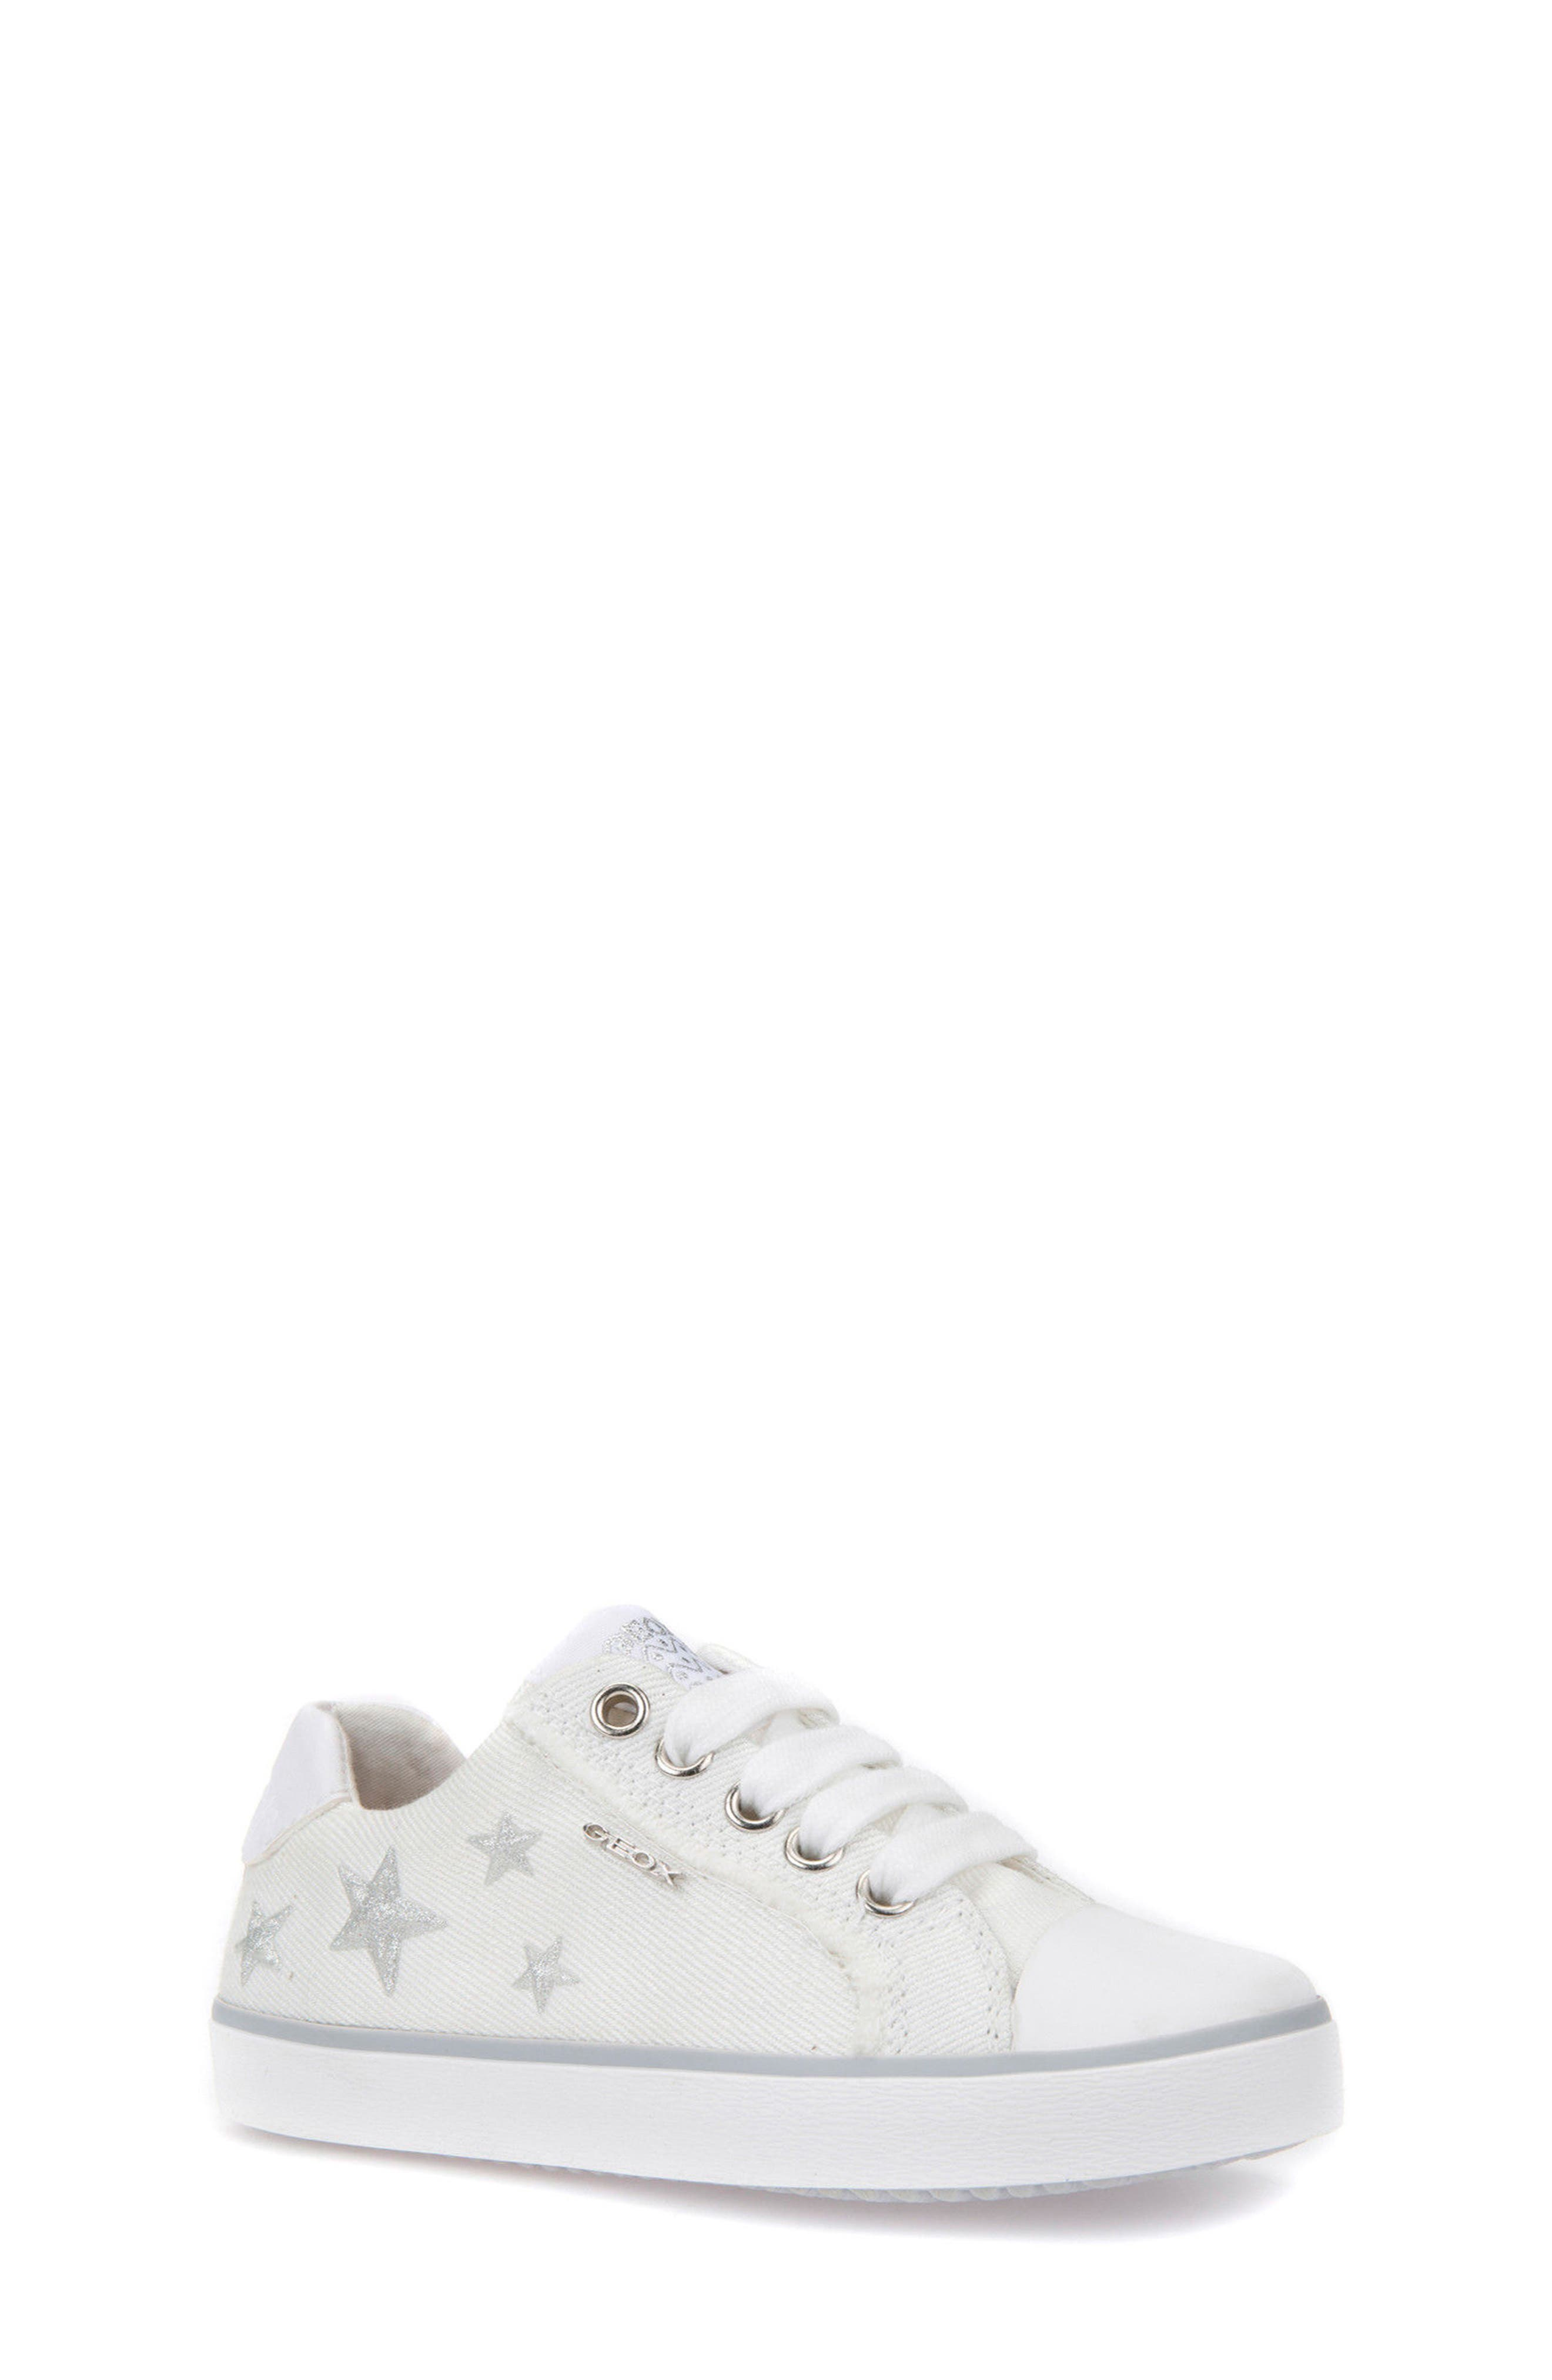 Kilwi Low Top Sneaker,                             Main thumbnail 1, color,                             WHITE